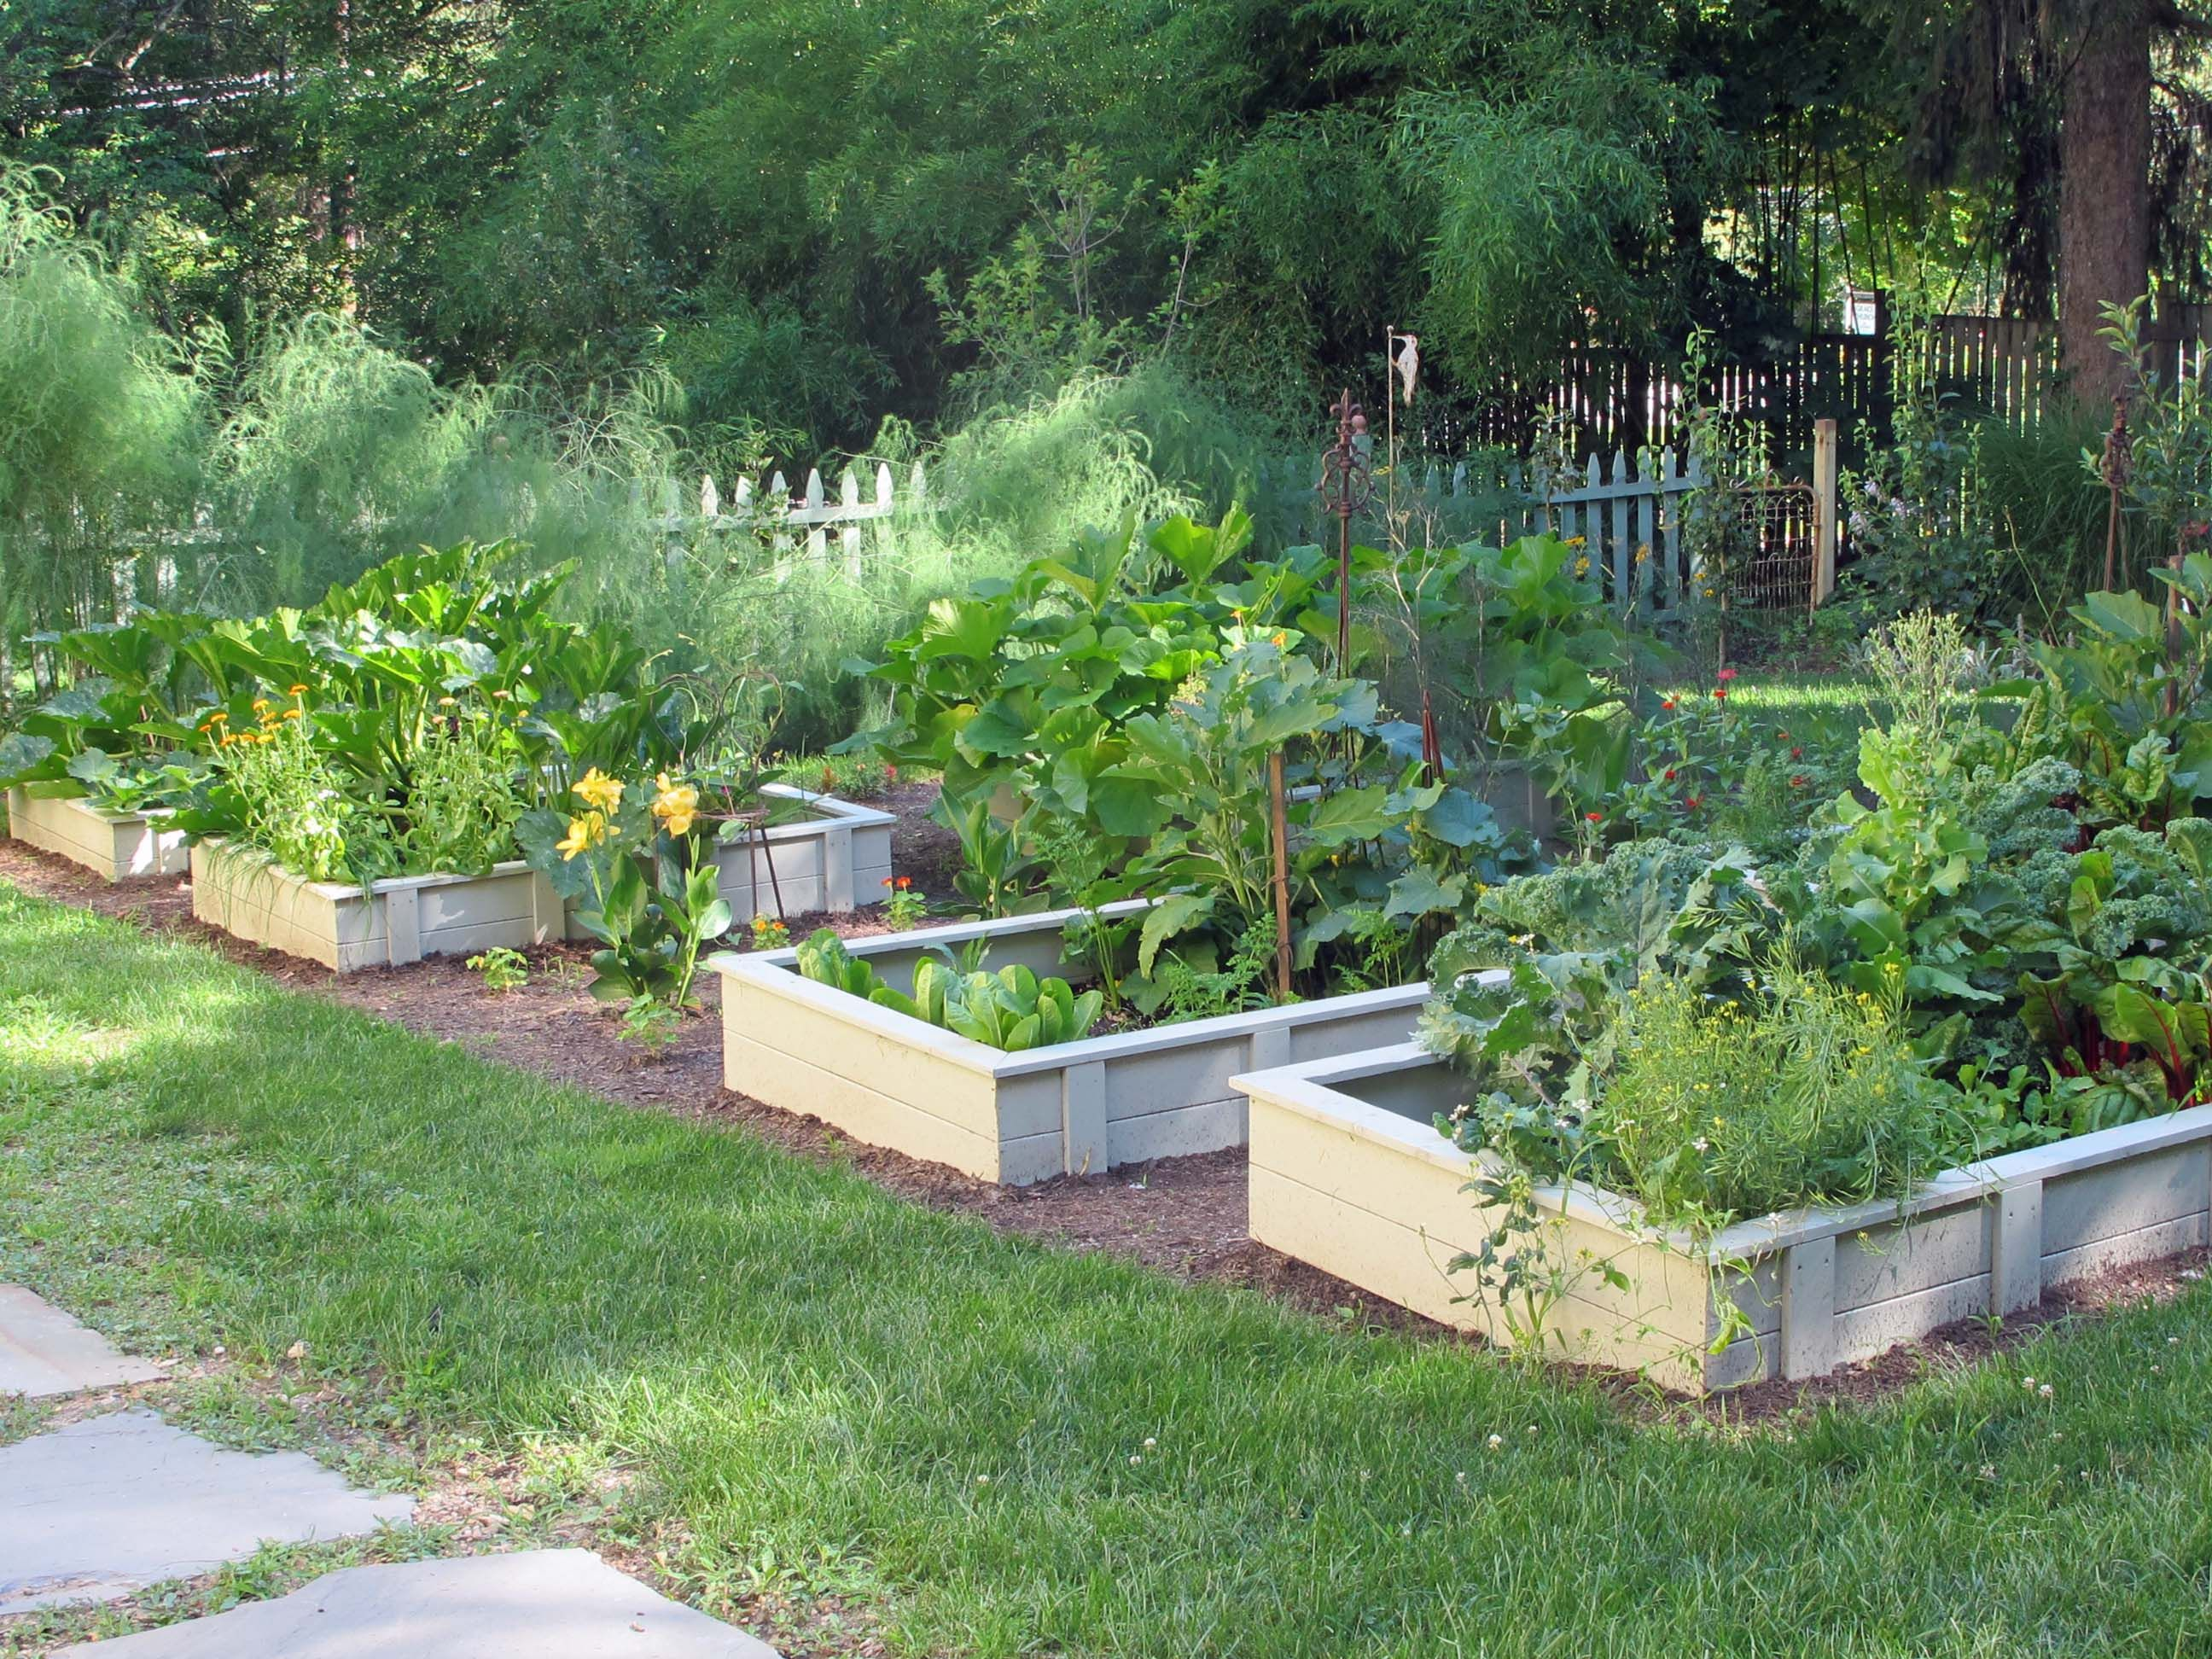 Raised vegetable garden design ideas veg garden beds for Vegetable garden design